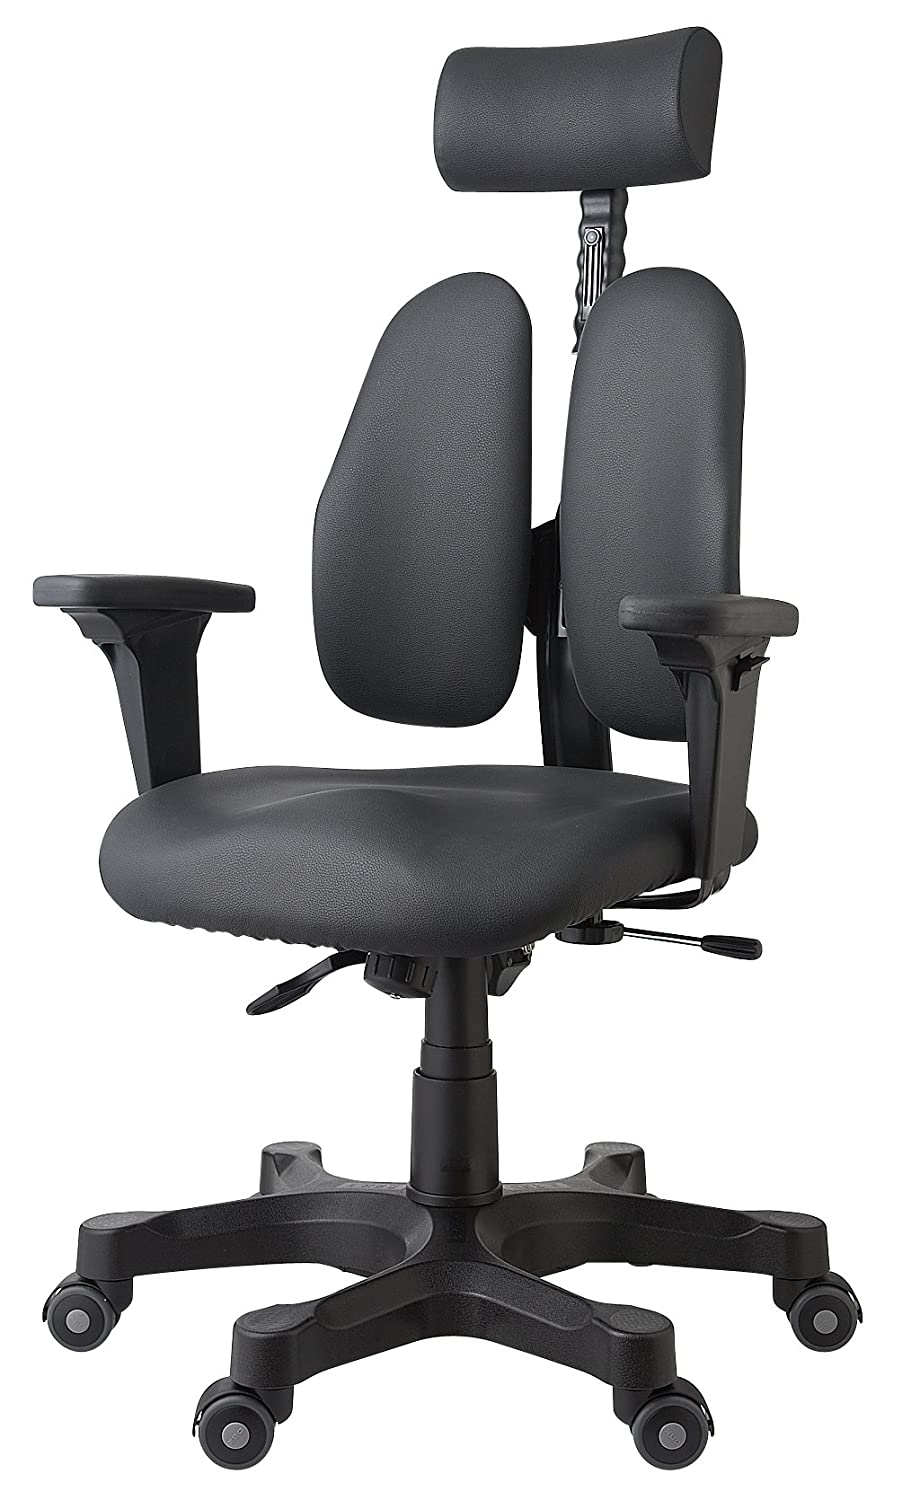 Amazon.com Leaders Executive Office Chair Fabric Water Resistant Knit Kitchen u0026 Dining  sc 1 st  Amazon.com & Amazon.com: Leaders Executive Office Chair Fabric: Water Resistant ...